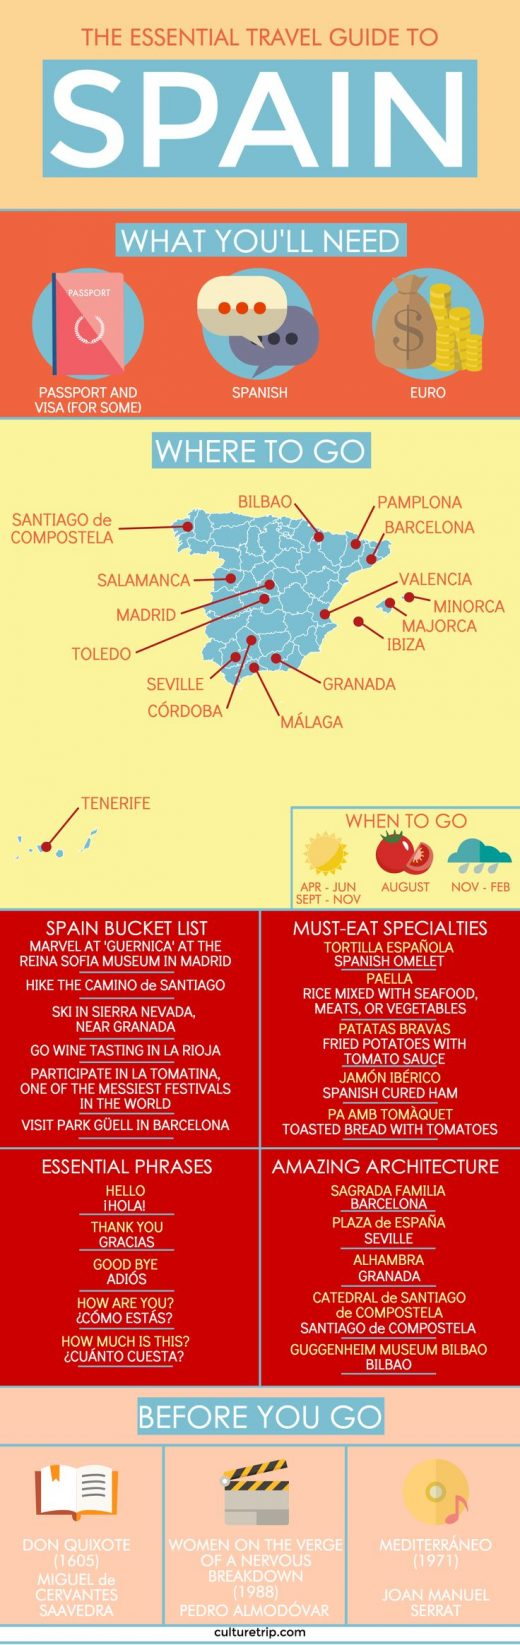 Your Essential Travel Guide to Spain (Infographic)